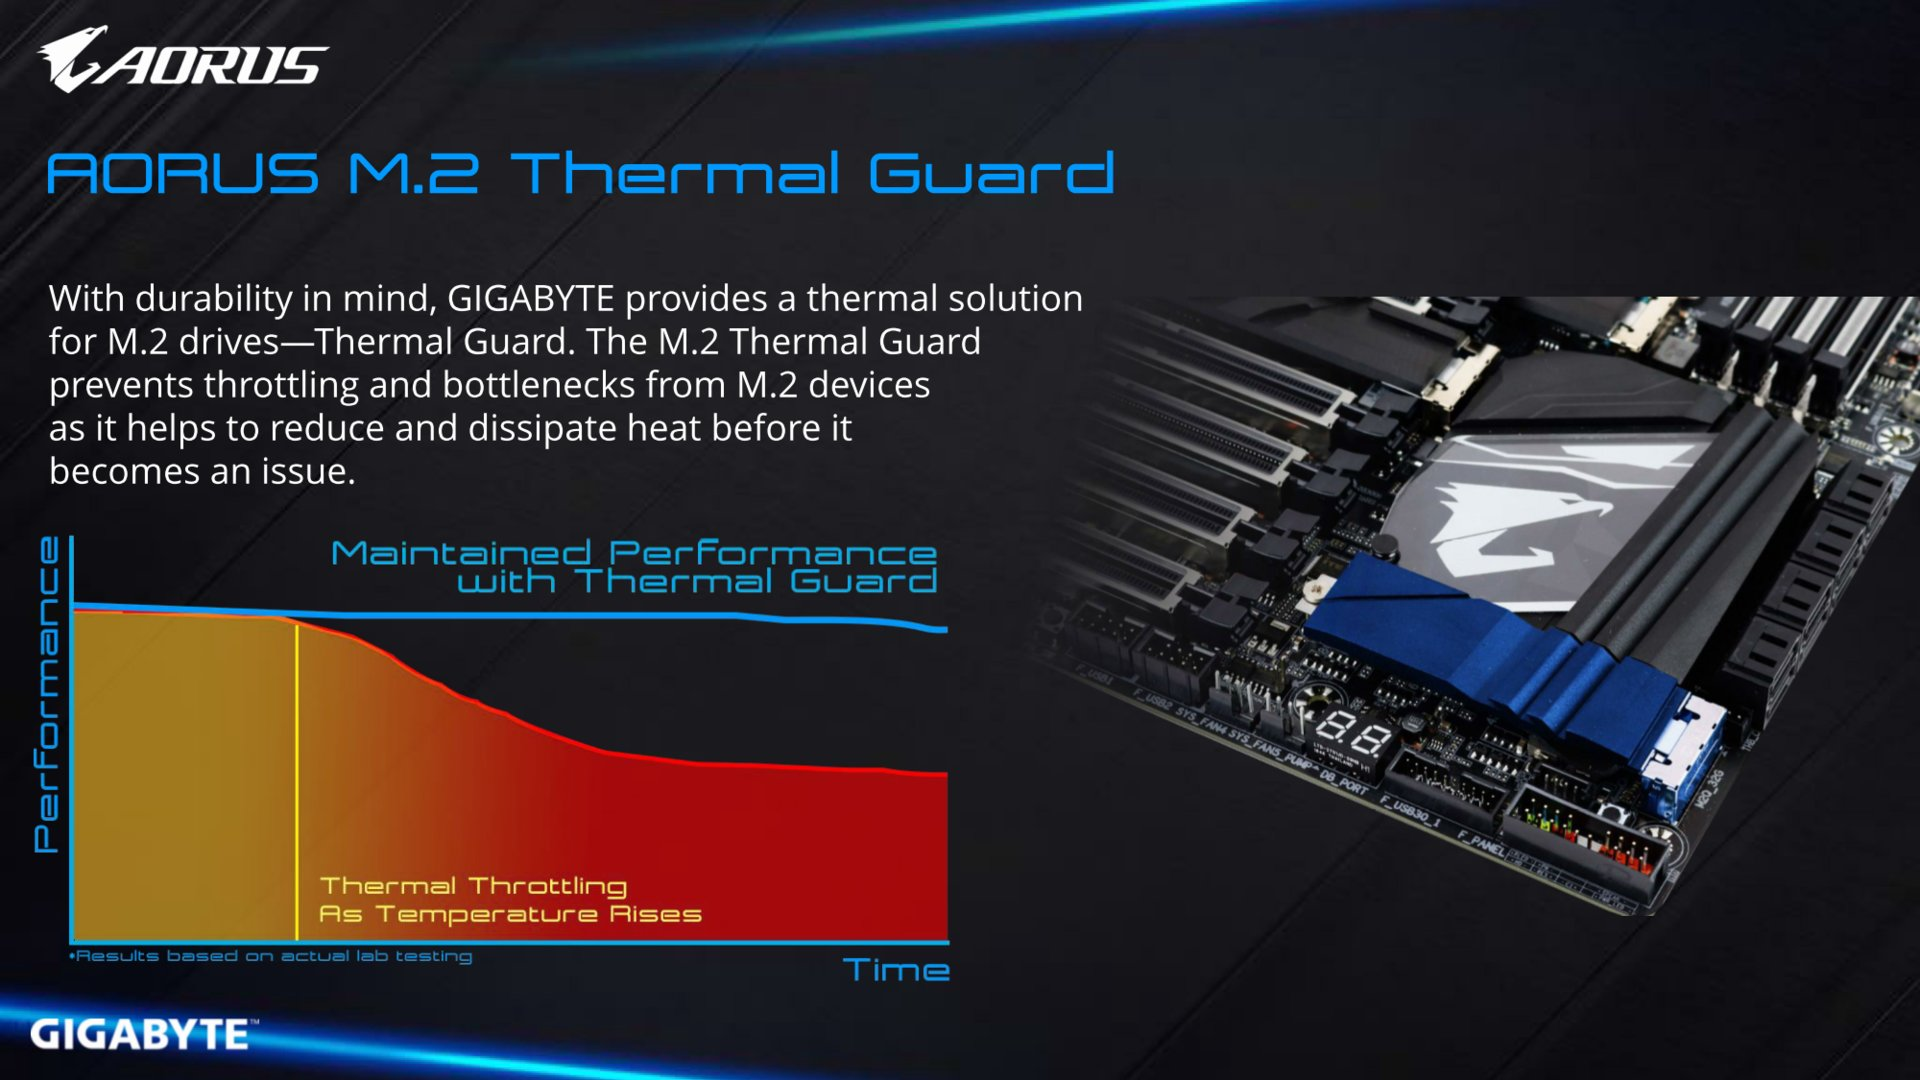 M.2 Thermal Guard